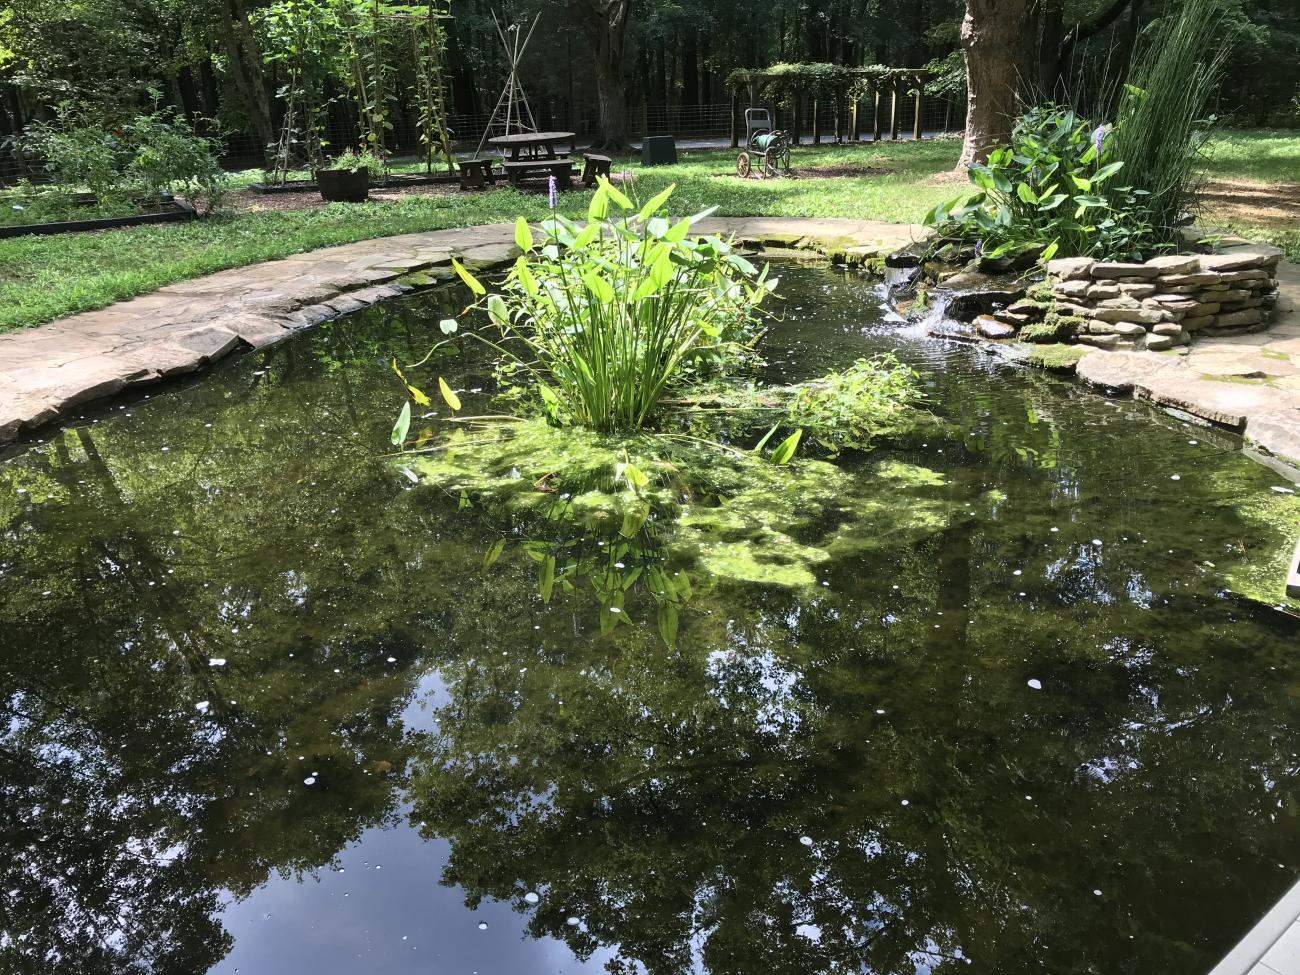 The man-made Study Pond in the Blue Jay Garden area